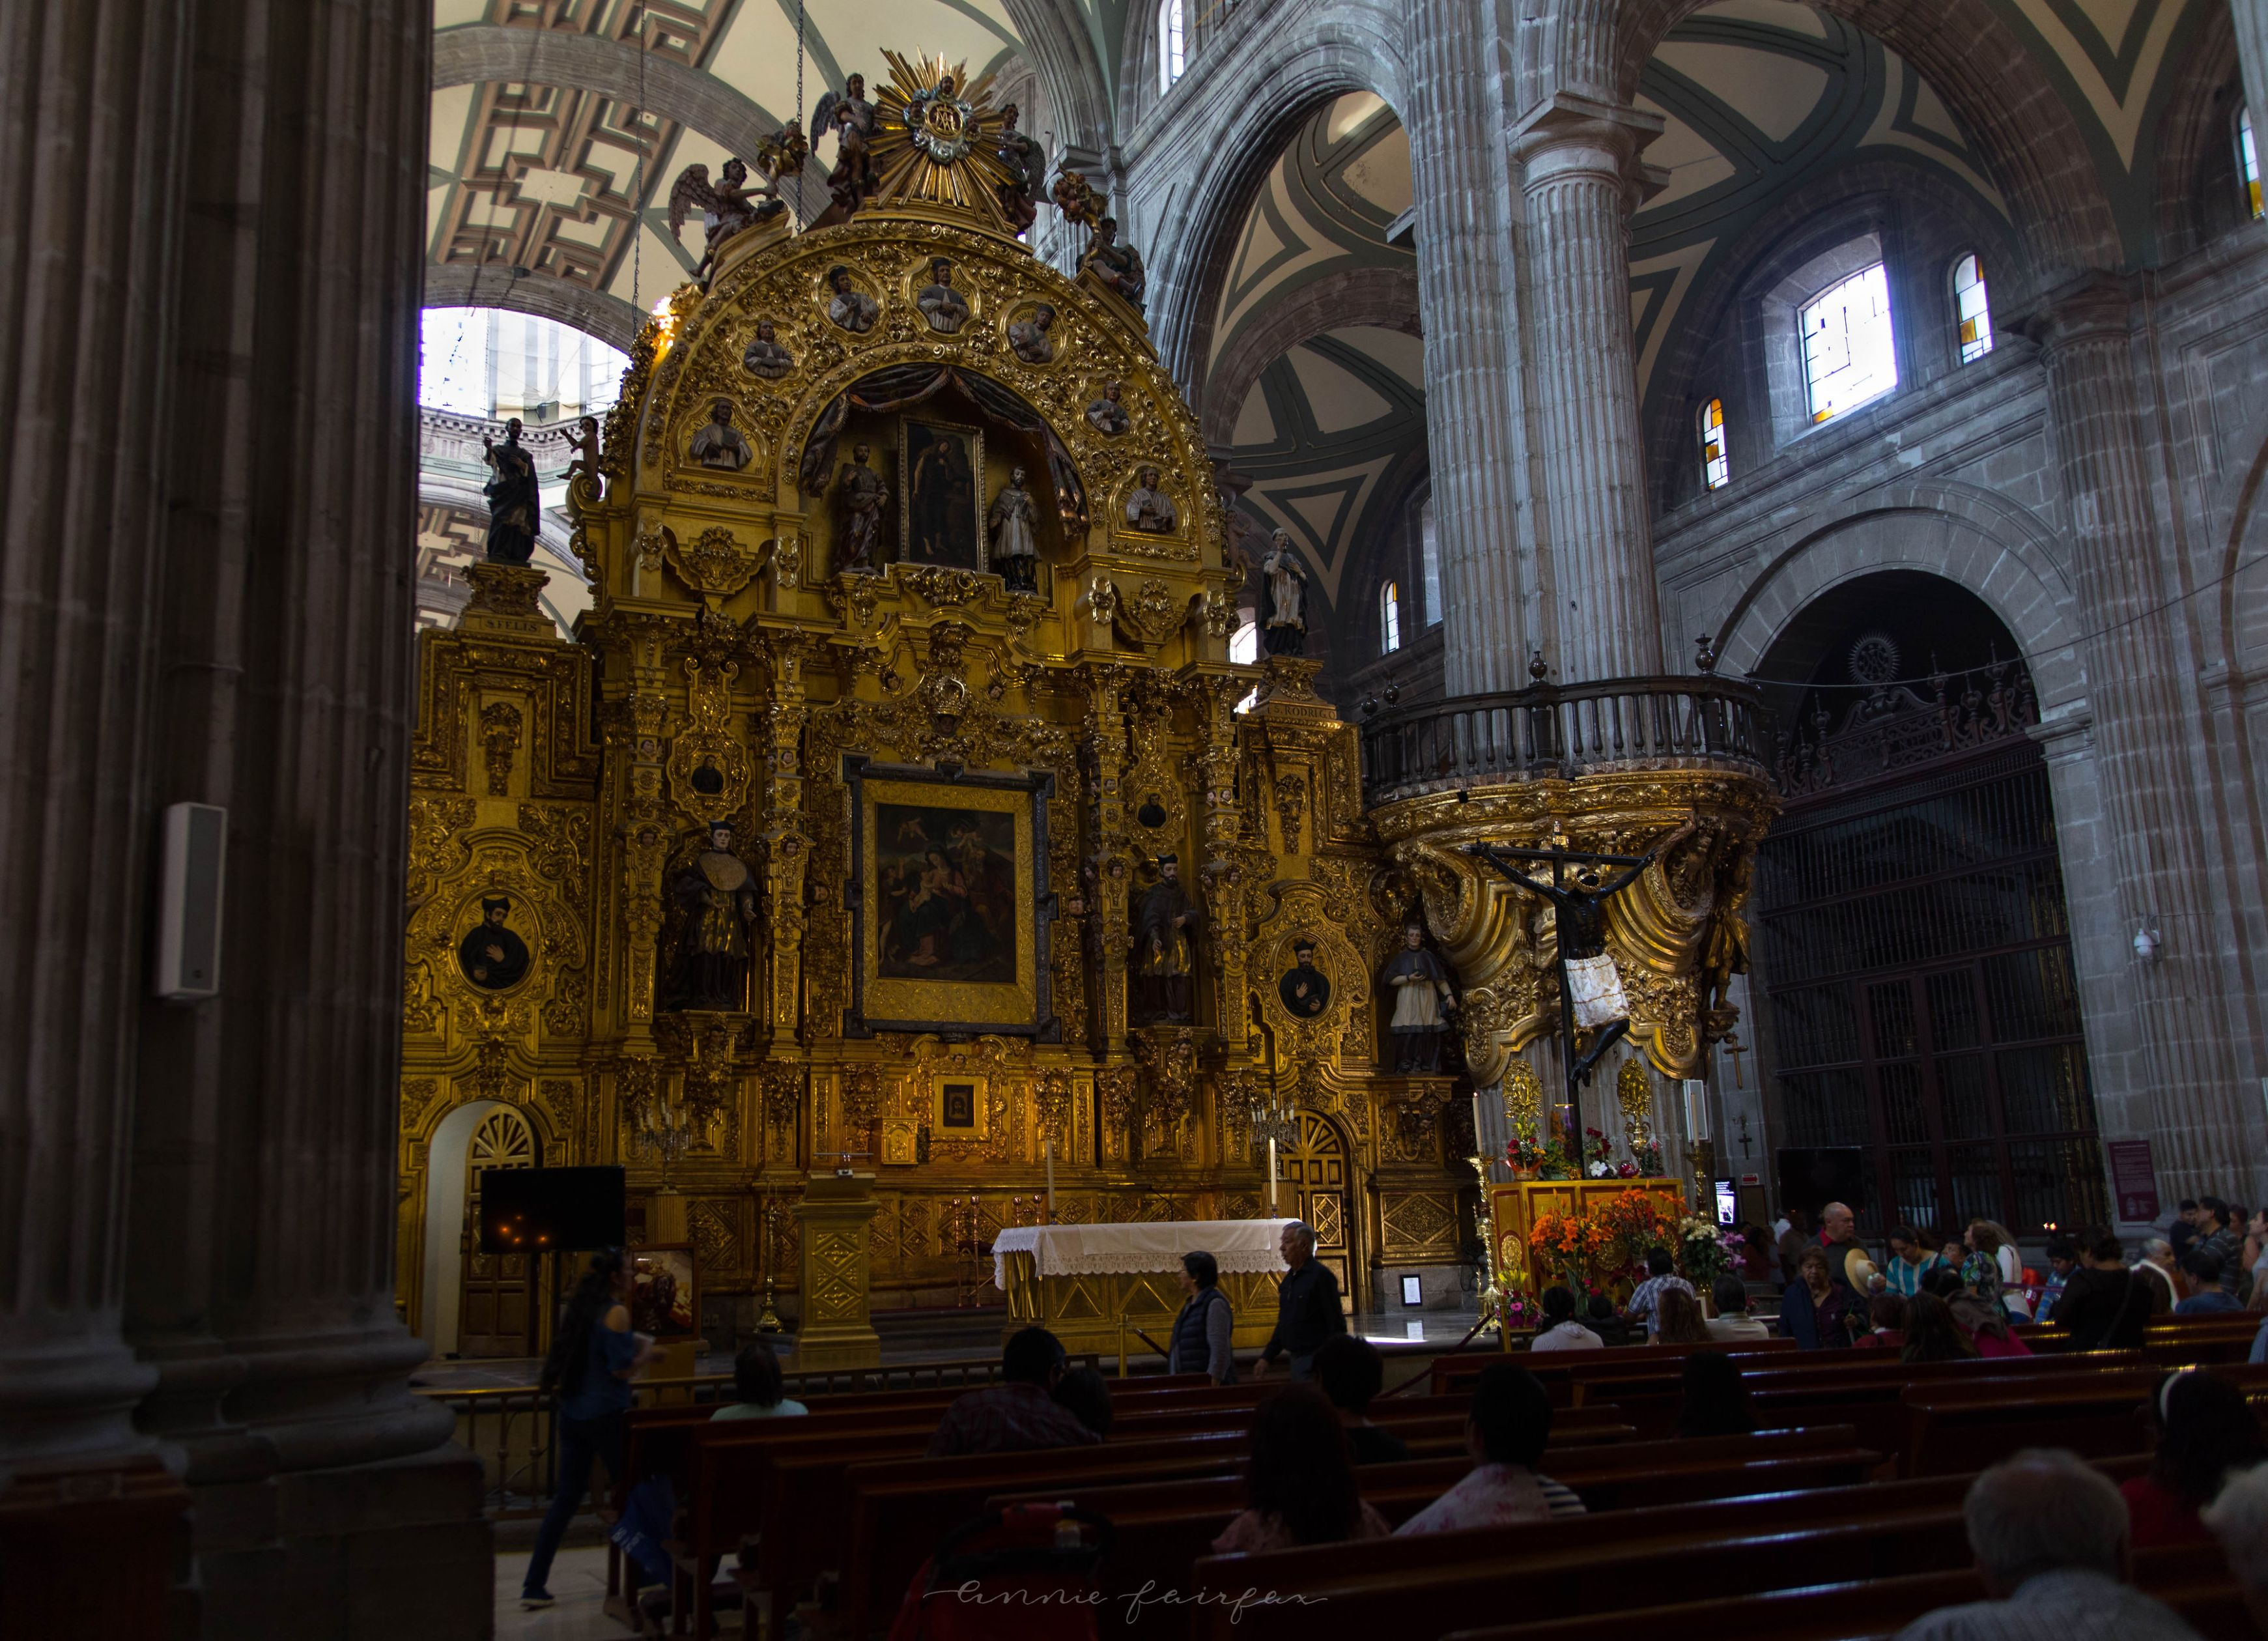 The Metropolitan Cathedral (Catedral Metropolitana) The Complet4e Traveler's Guide to Mexico City Mexico Where to Stay What to Eat Where to Visit What to Do Places to Avoid How to Stay Safe in Mexico City